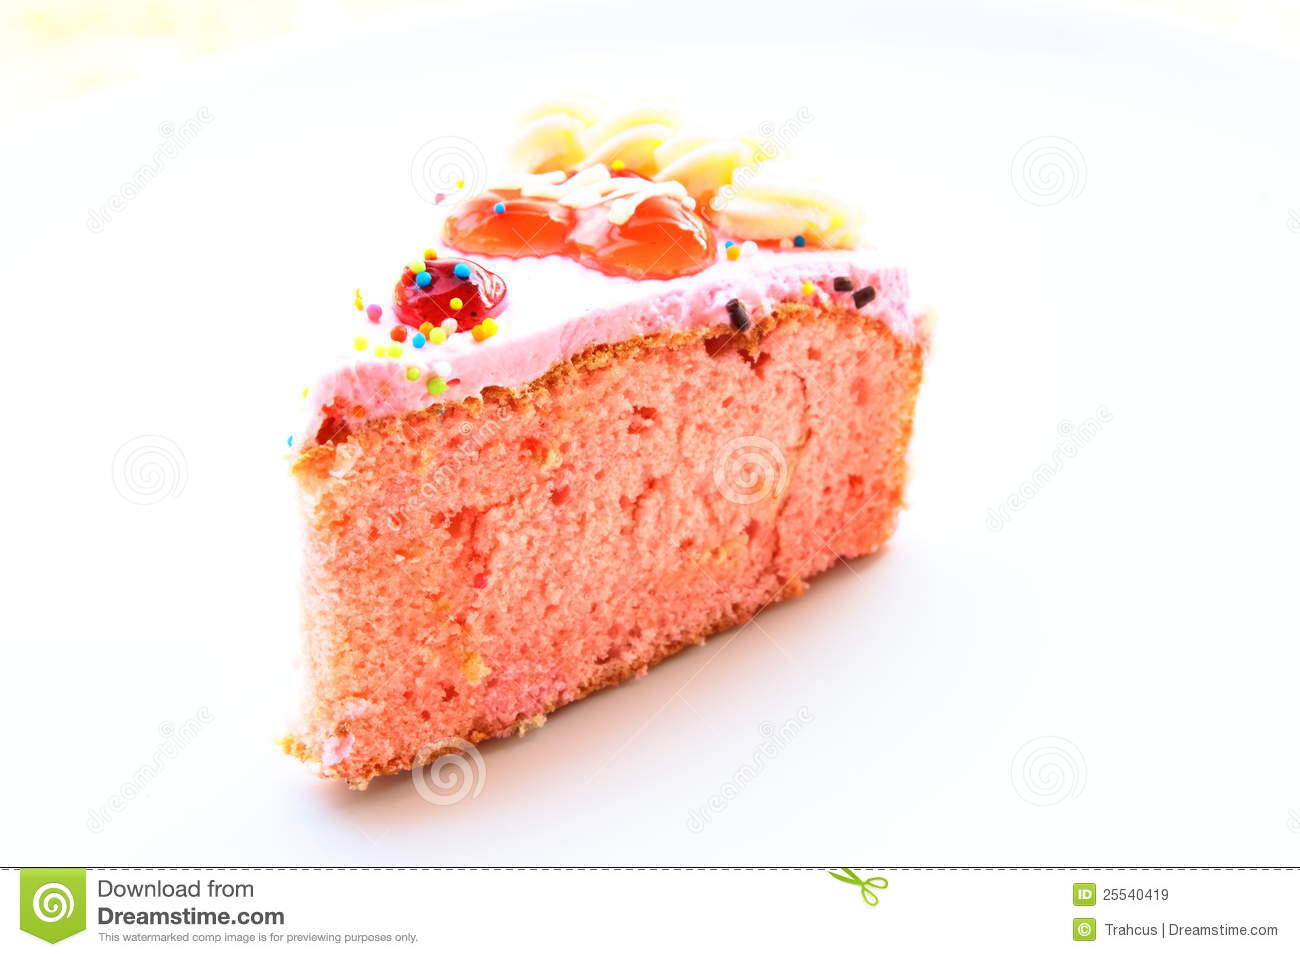 Strawberry Flavour Cake Images : A Piece Of Strawberry Flavor Cake Royalty Free Stock ...